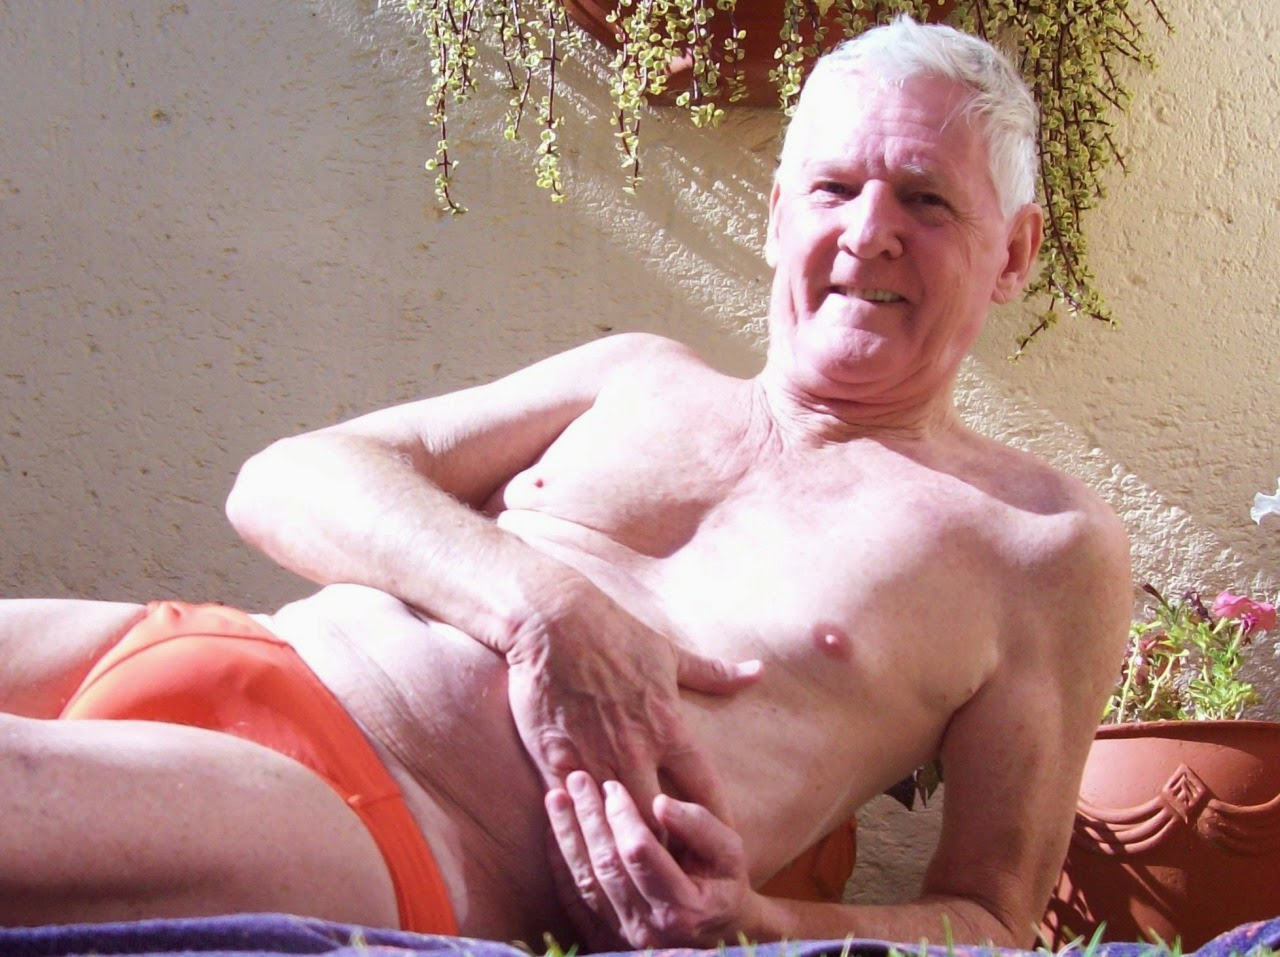 Hot naked old men, porn adult anal email aress only